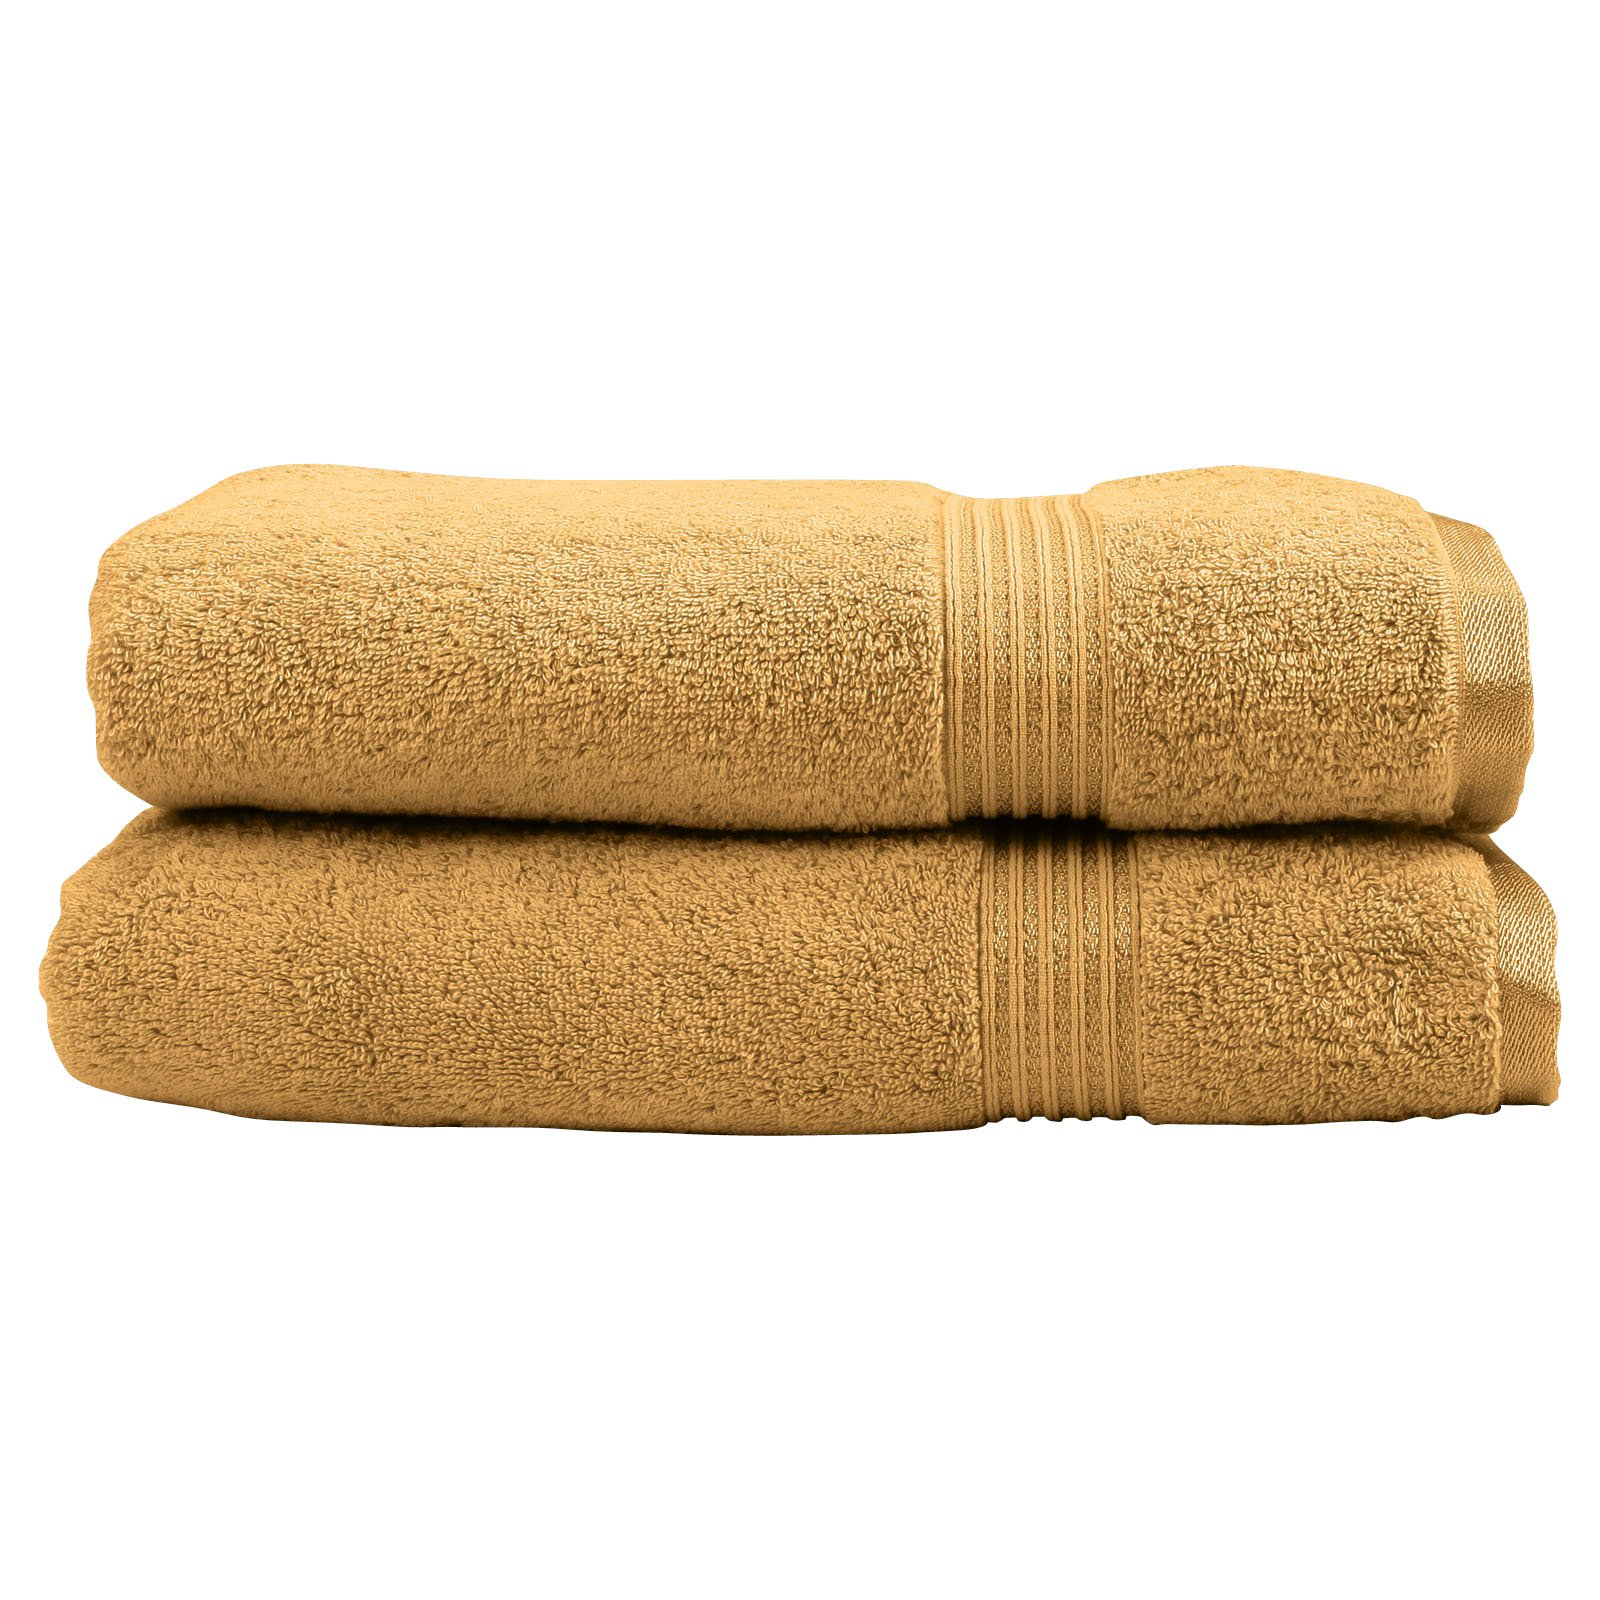 Superior 600GSM Egyptian Quality Cotton 2-Piece Bath Sheet Towel Set